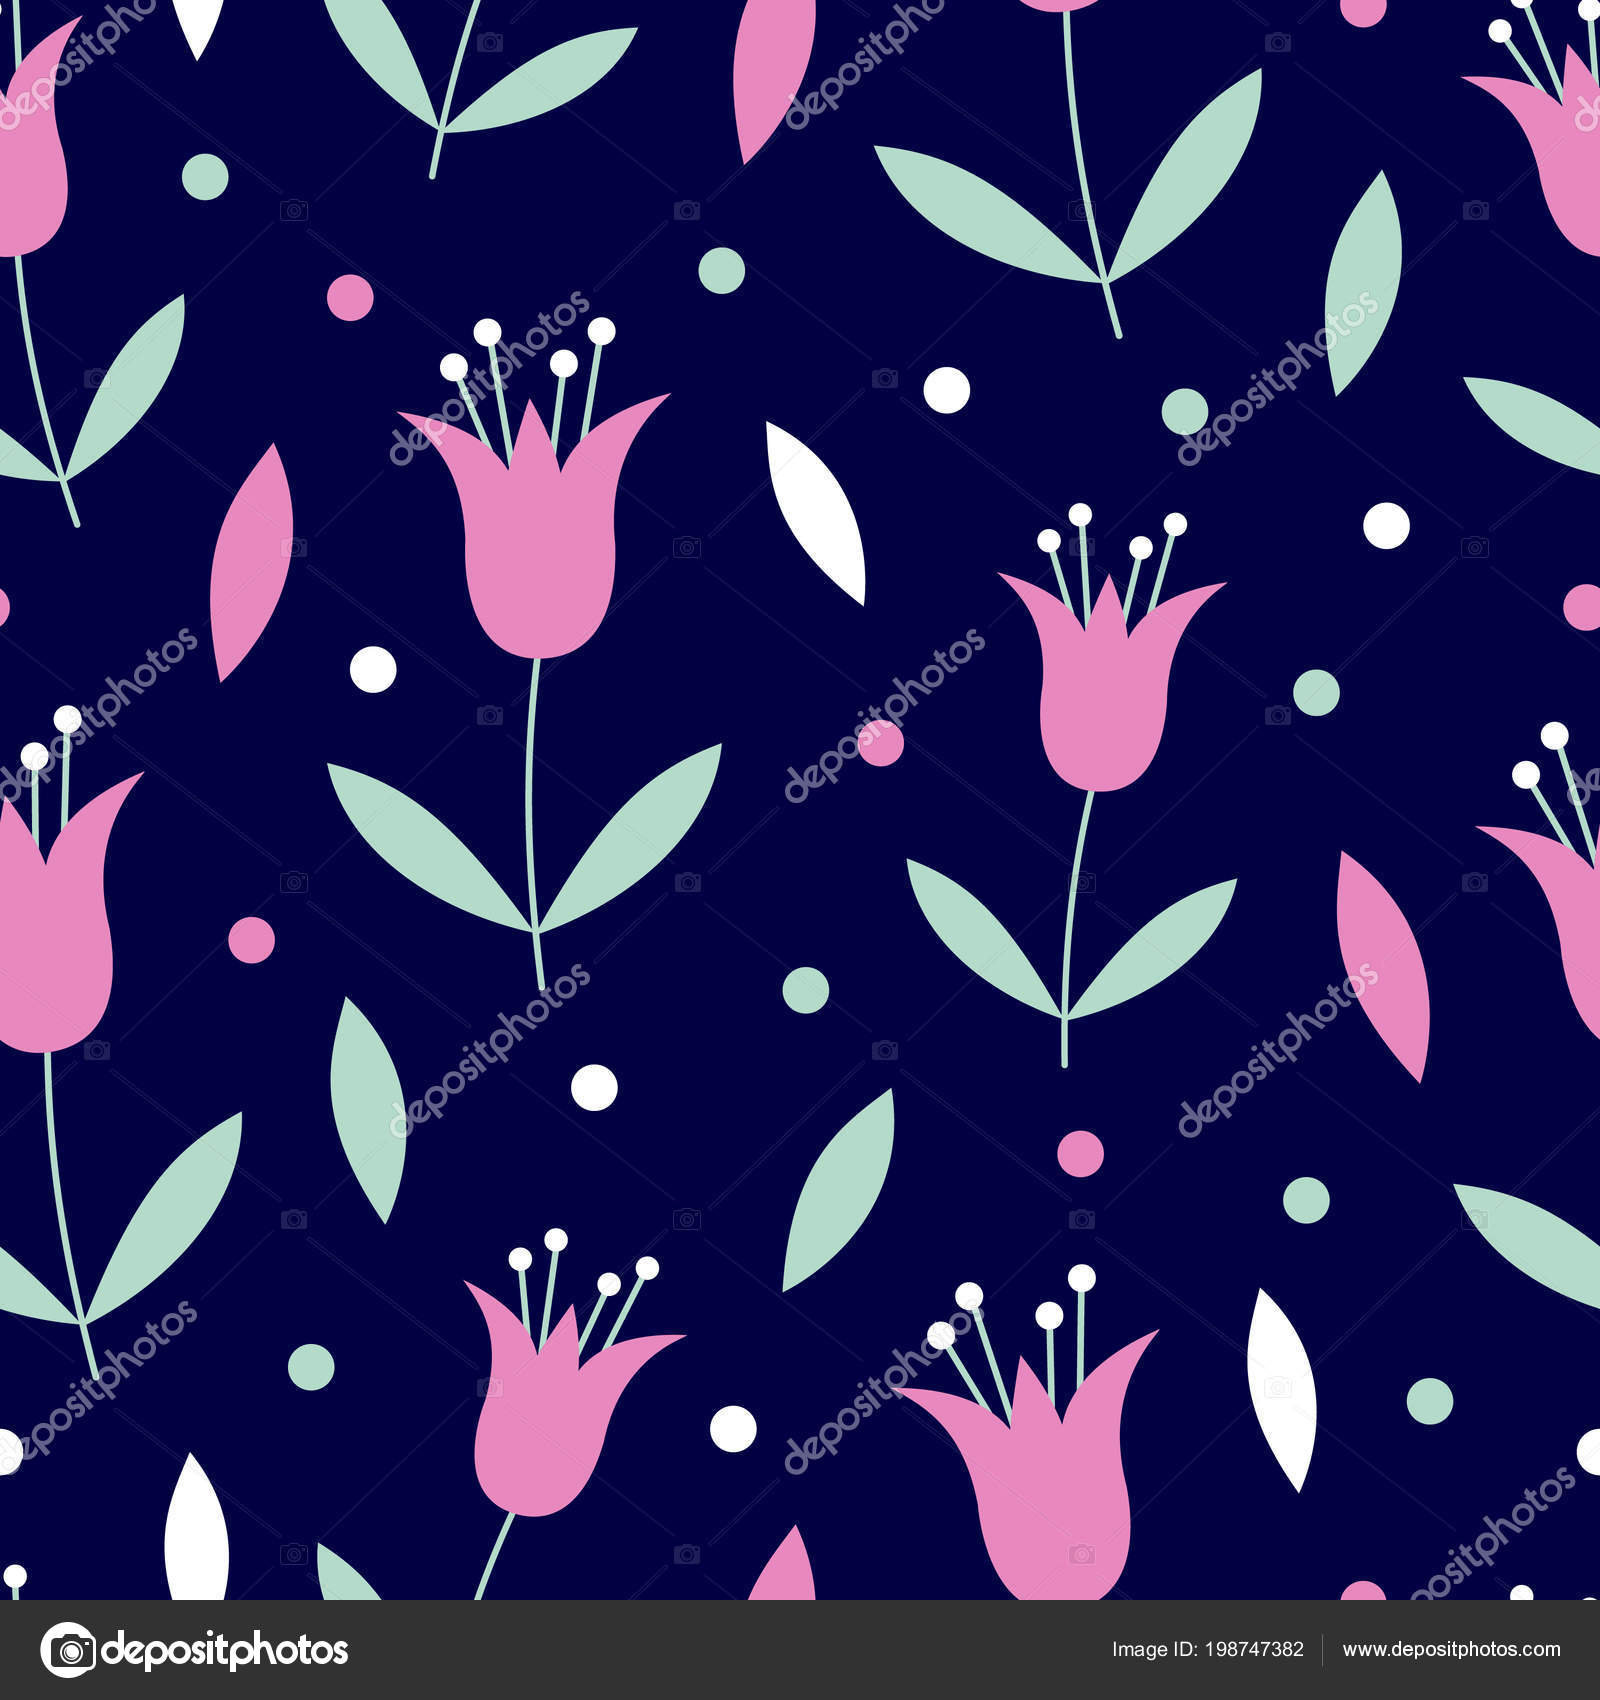 Vector Seamless Pattern Pink Mint Green Flowers Leaves Navy Blue